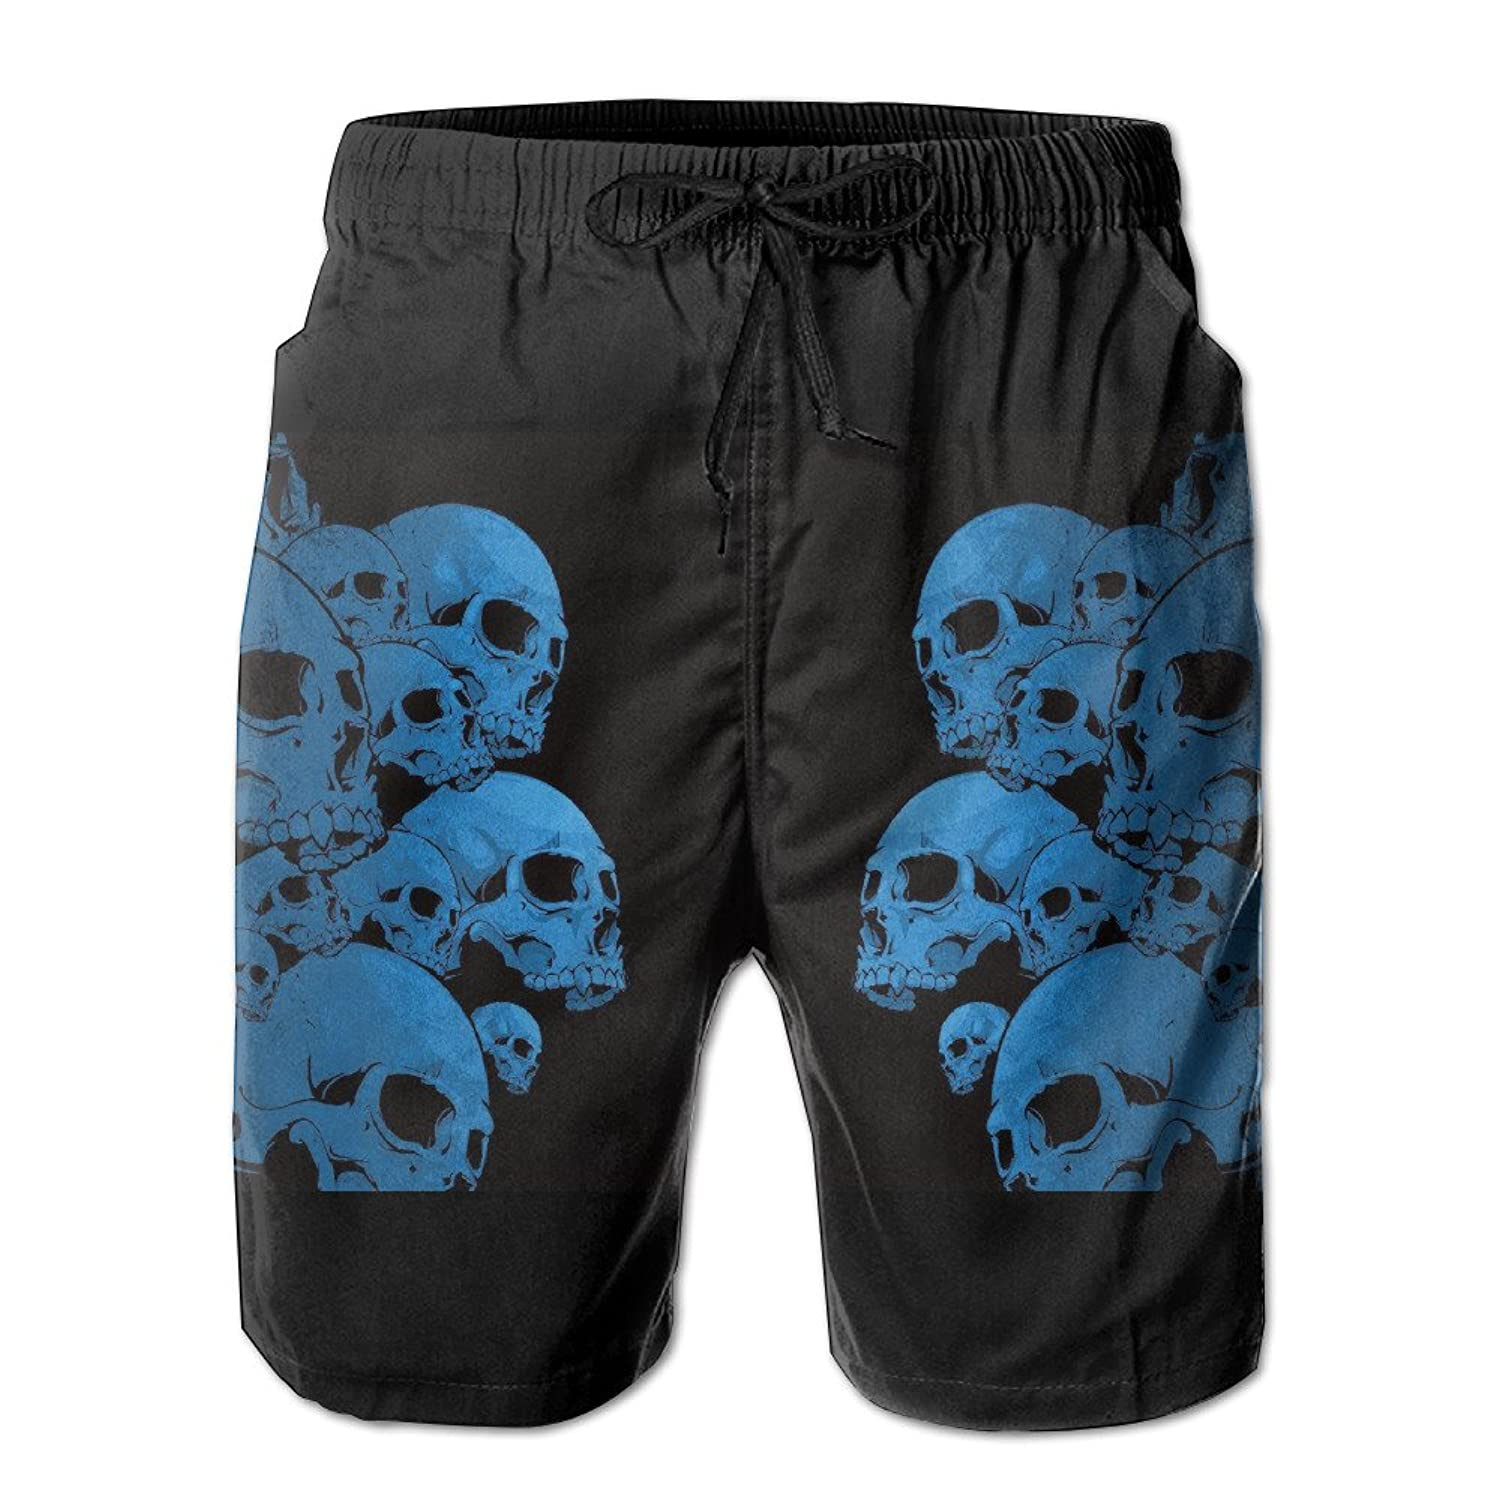 2017 Newest Men's Blue Trippy Skull Quick Dry Beach Board Shorts